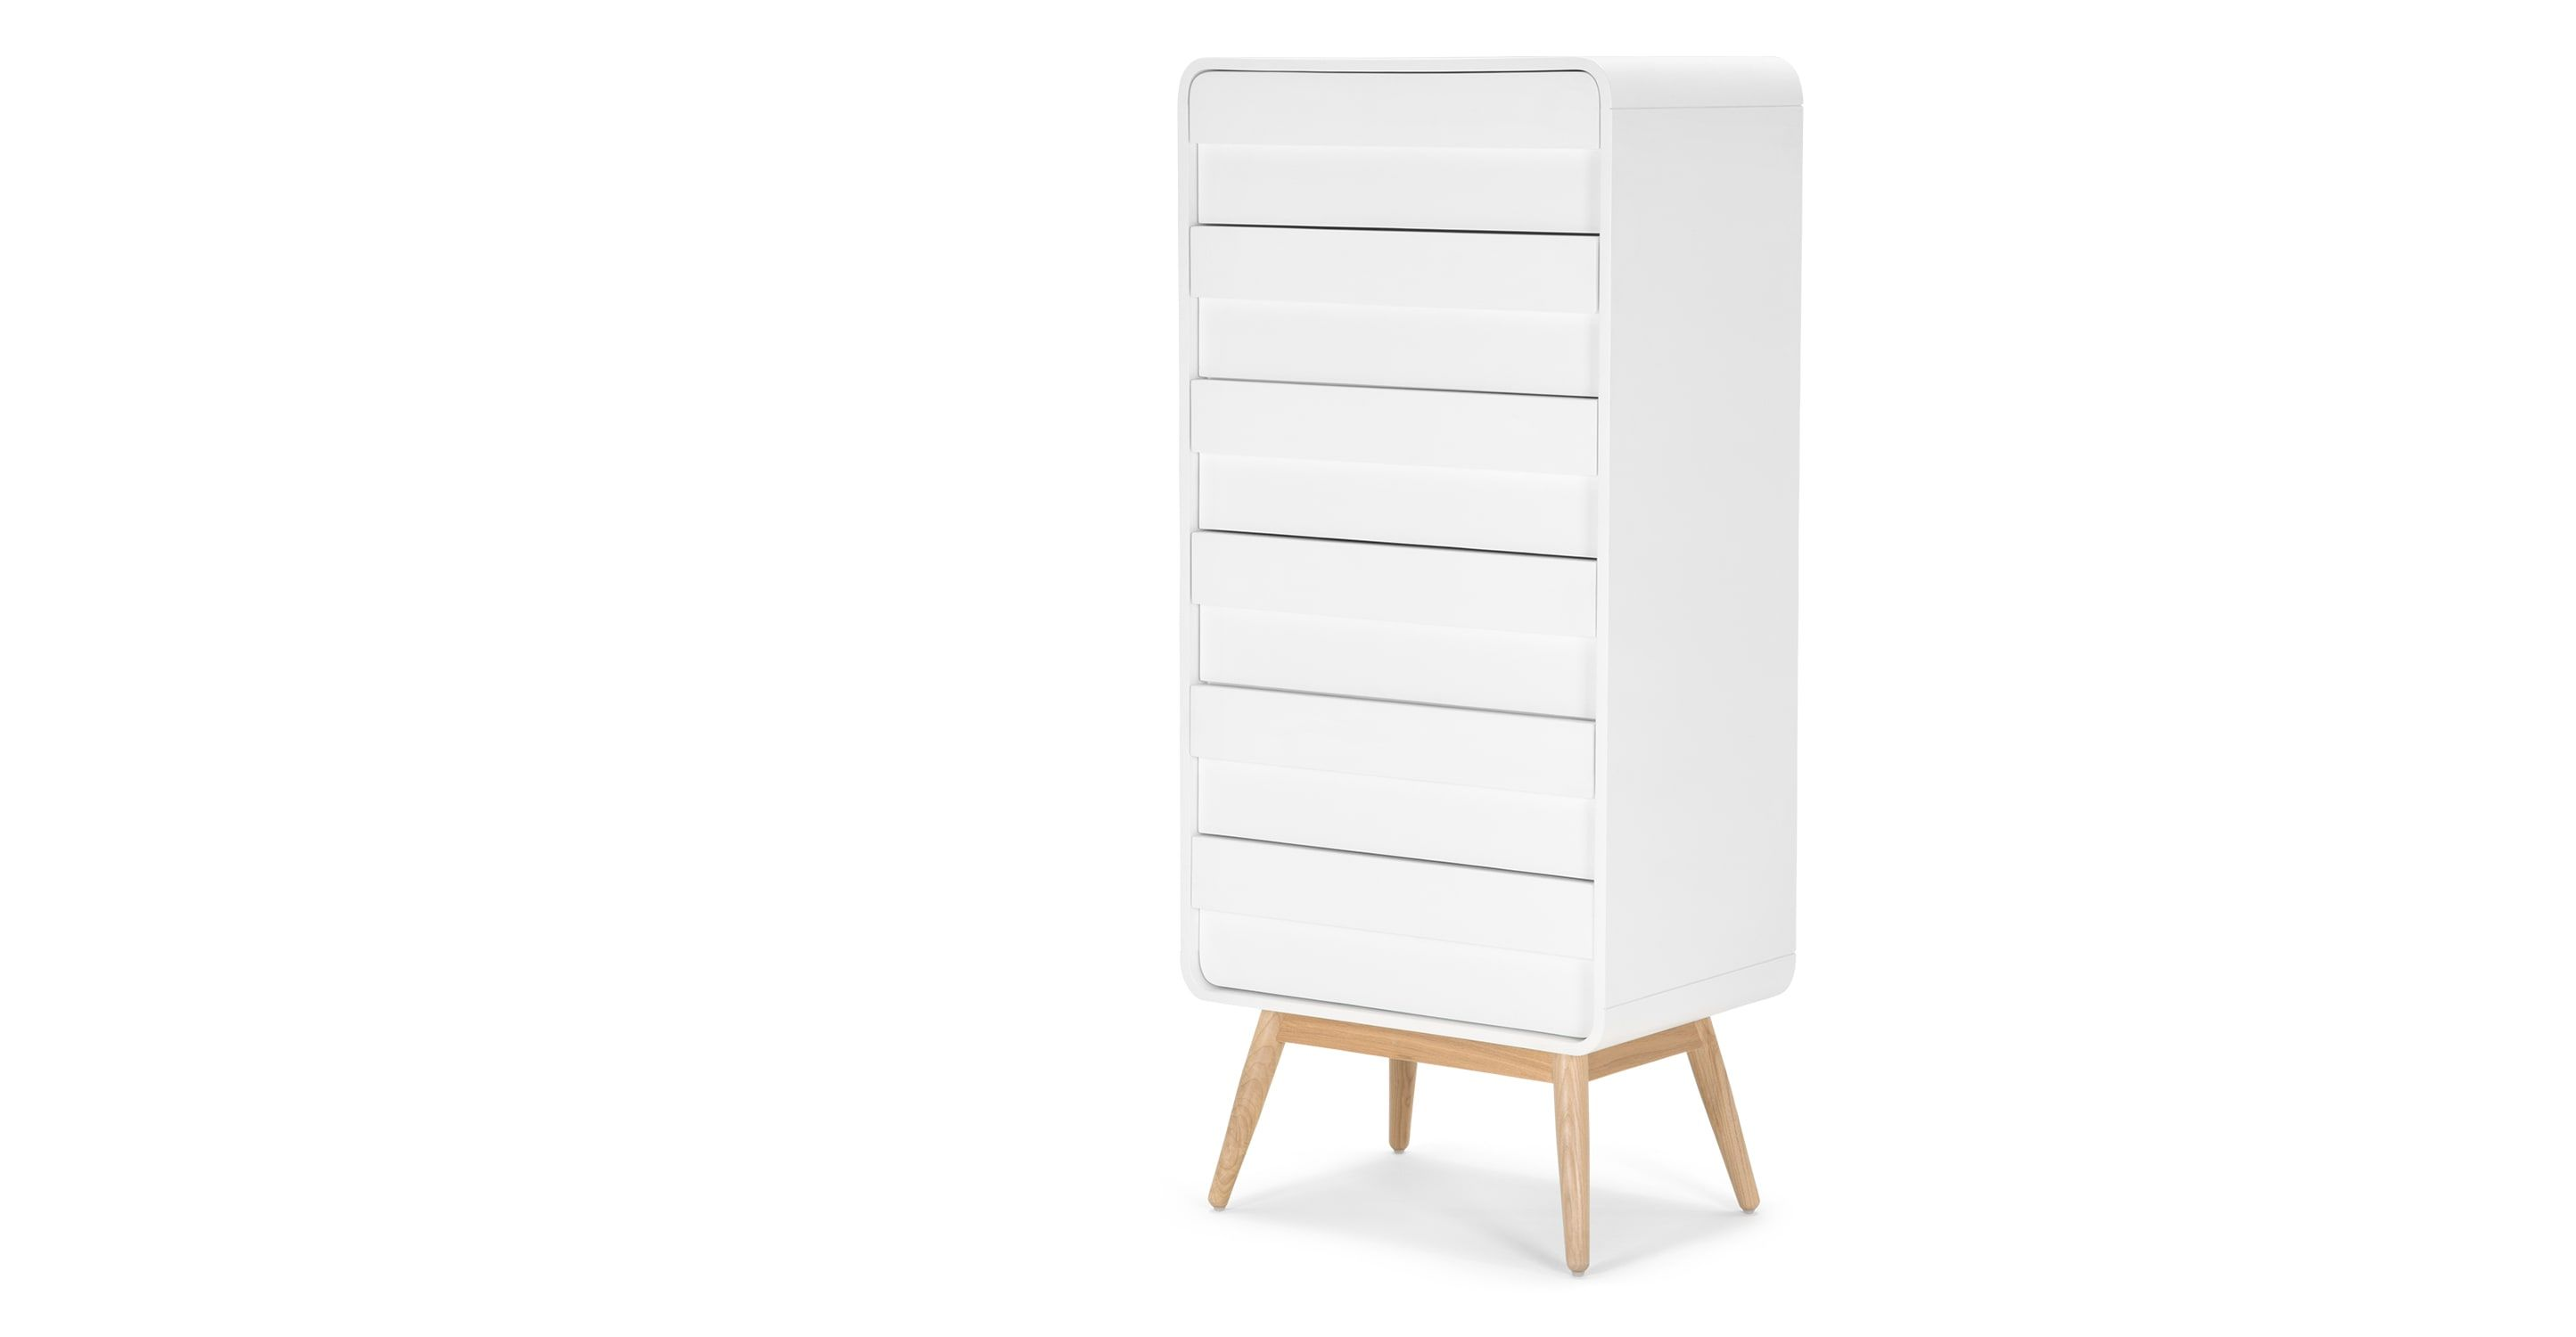 Commode Haute Chambre Esme Commode Haute Frêne Et Blanc Chambre Chest Of Drawers